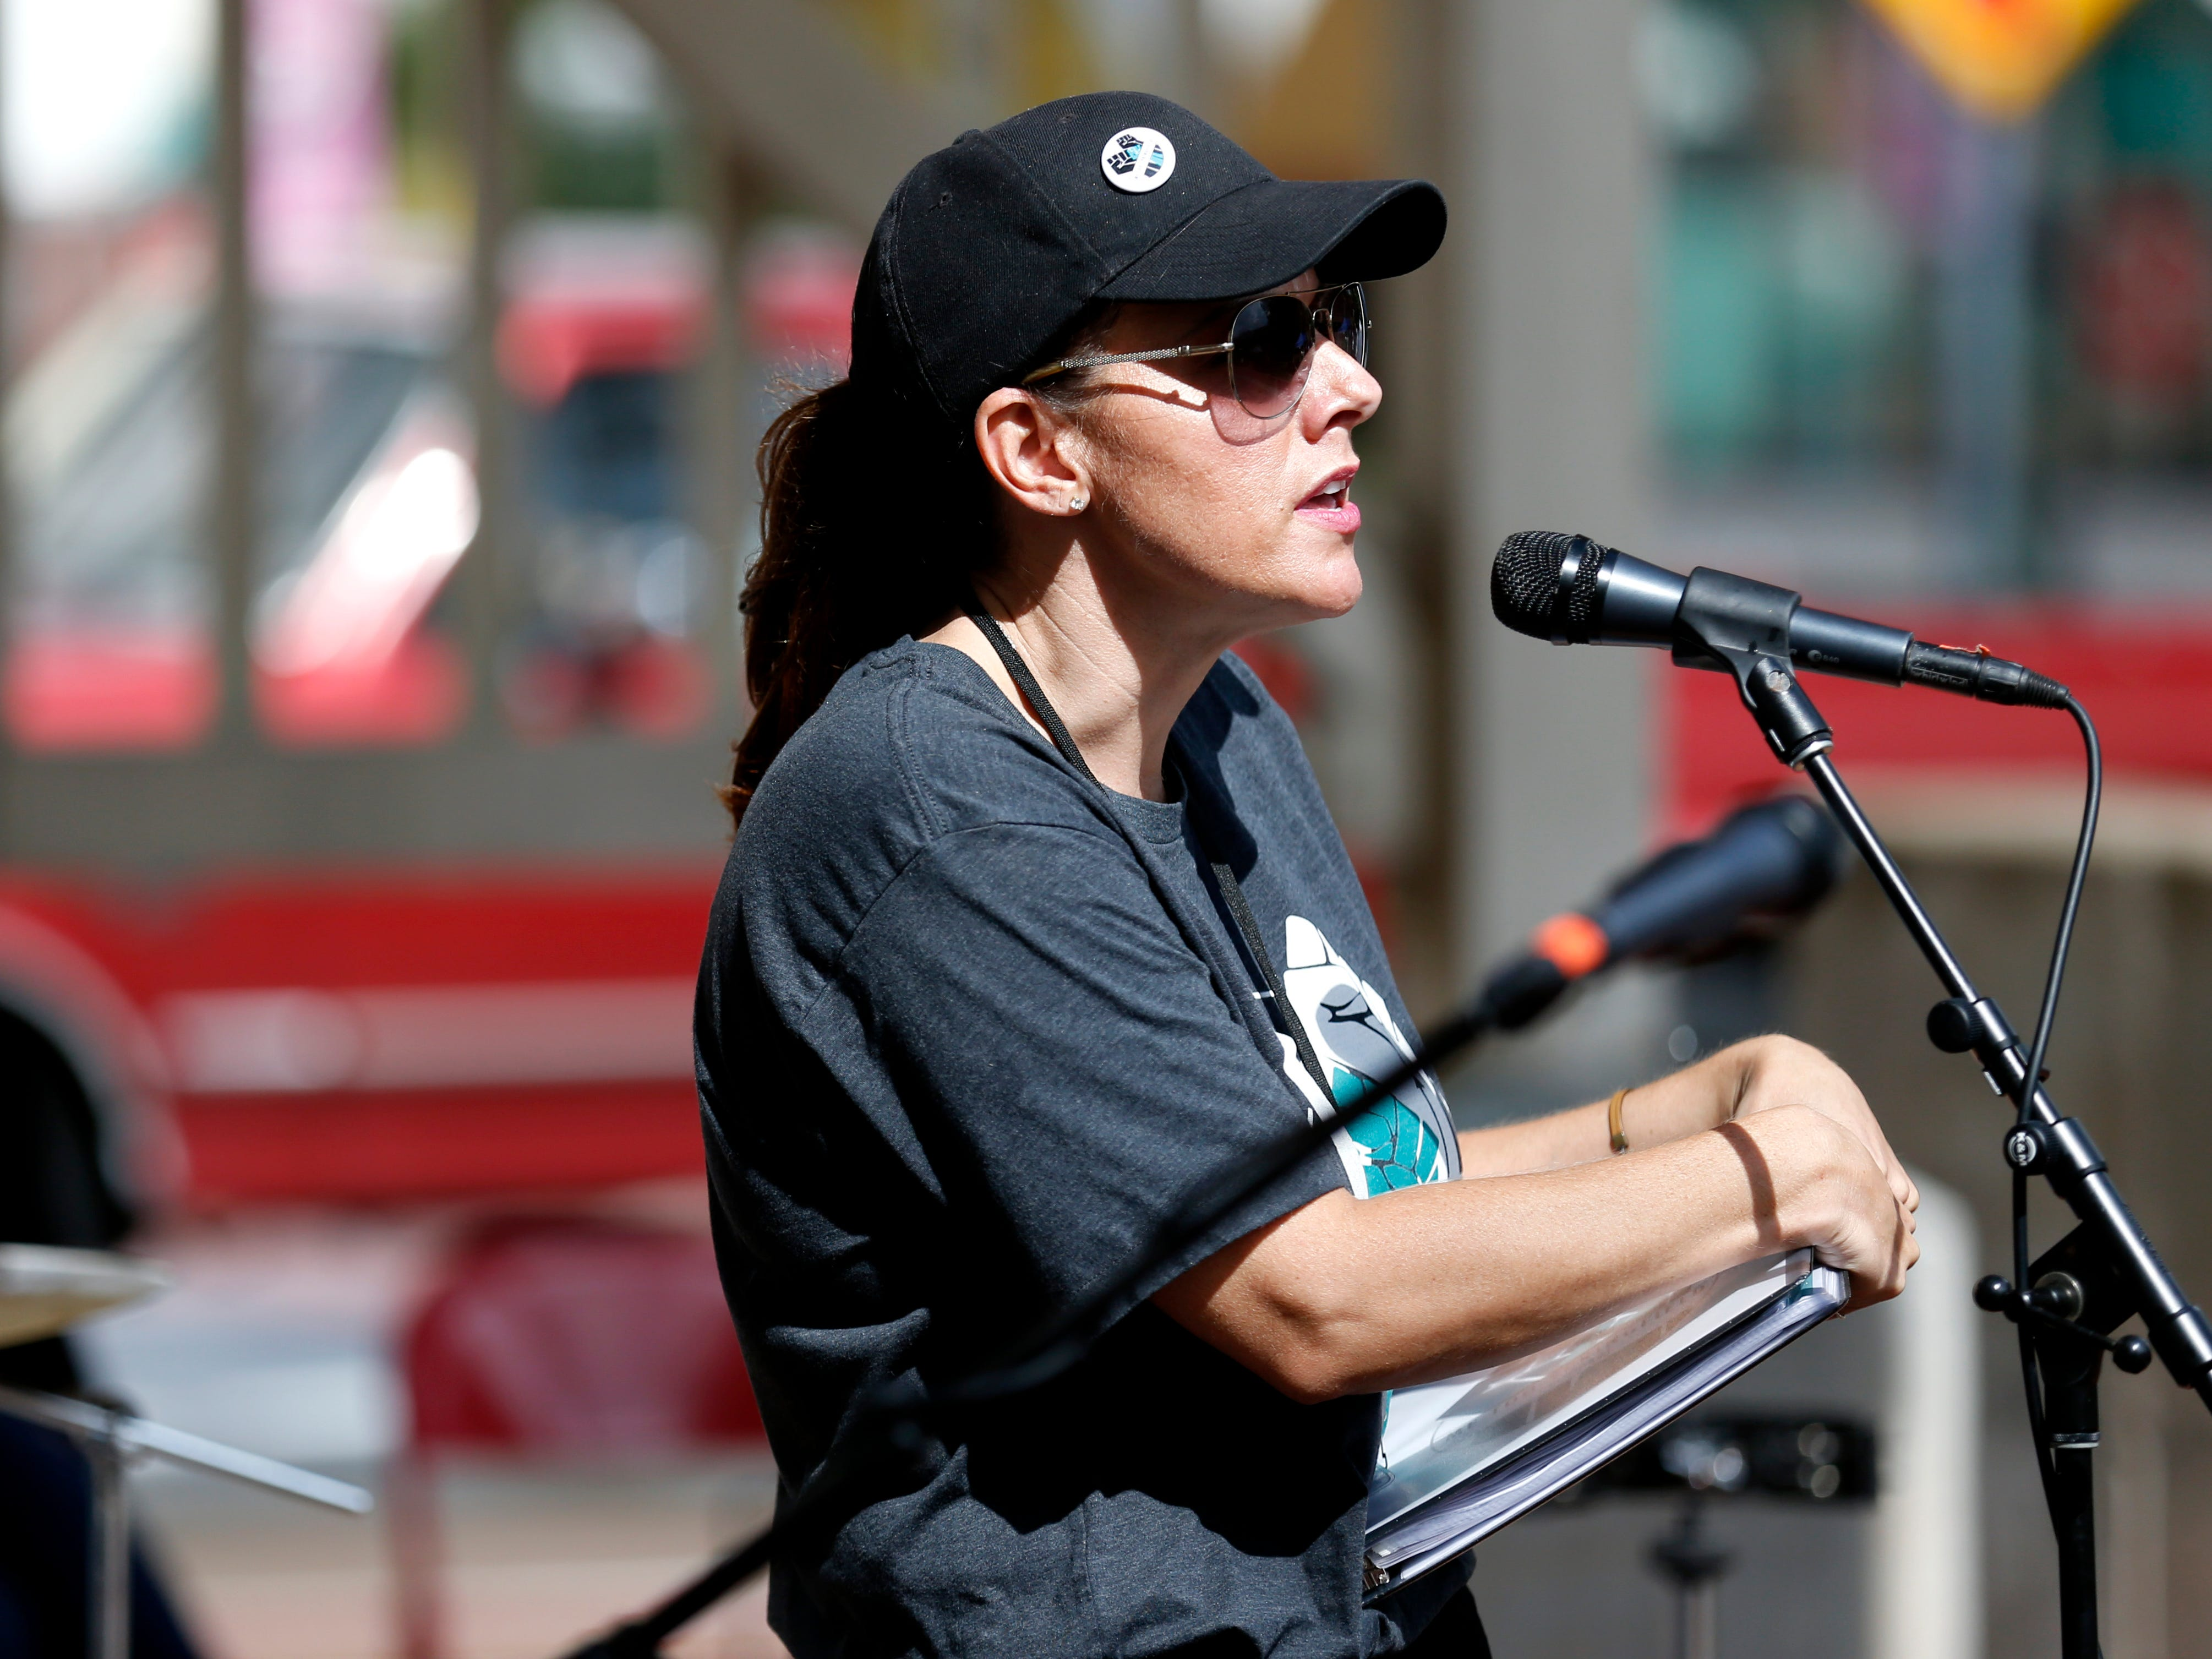 Sarah Bargo, one of the organizers of the #MeToo rally in downtown Springfield, speaks to the crowd during the event on Saturday, Oct. 6, 2018.